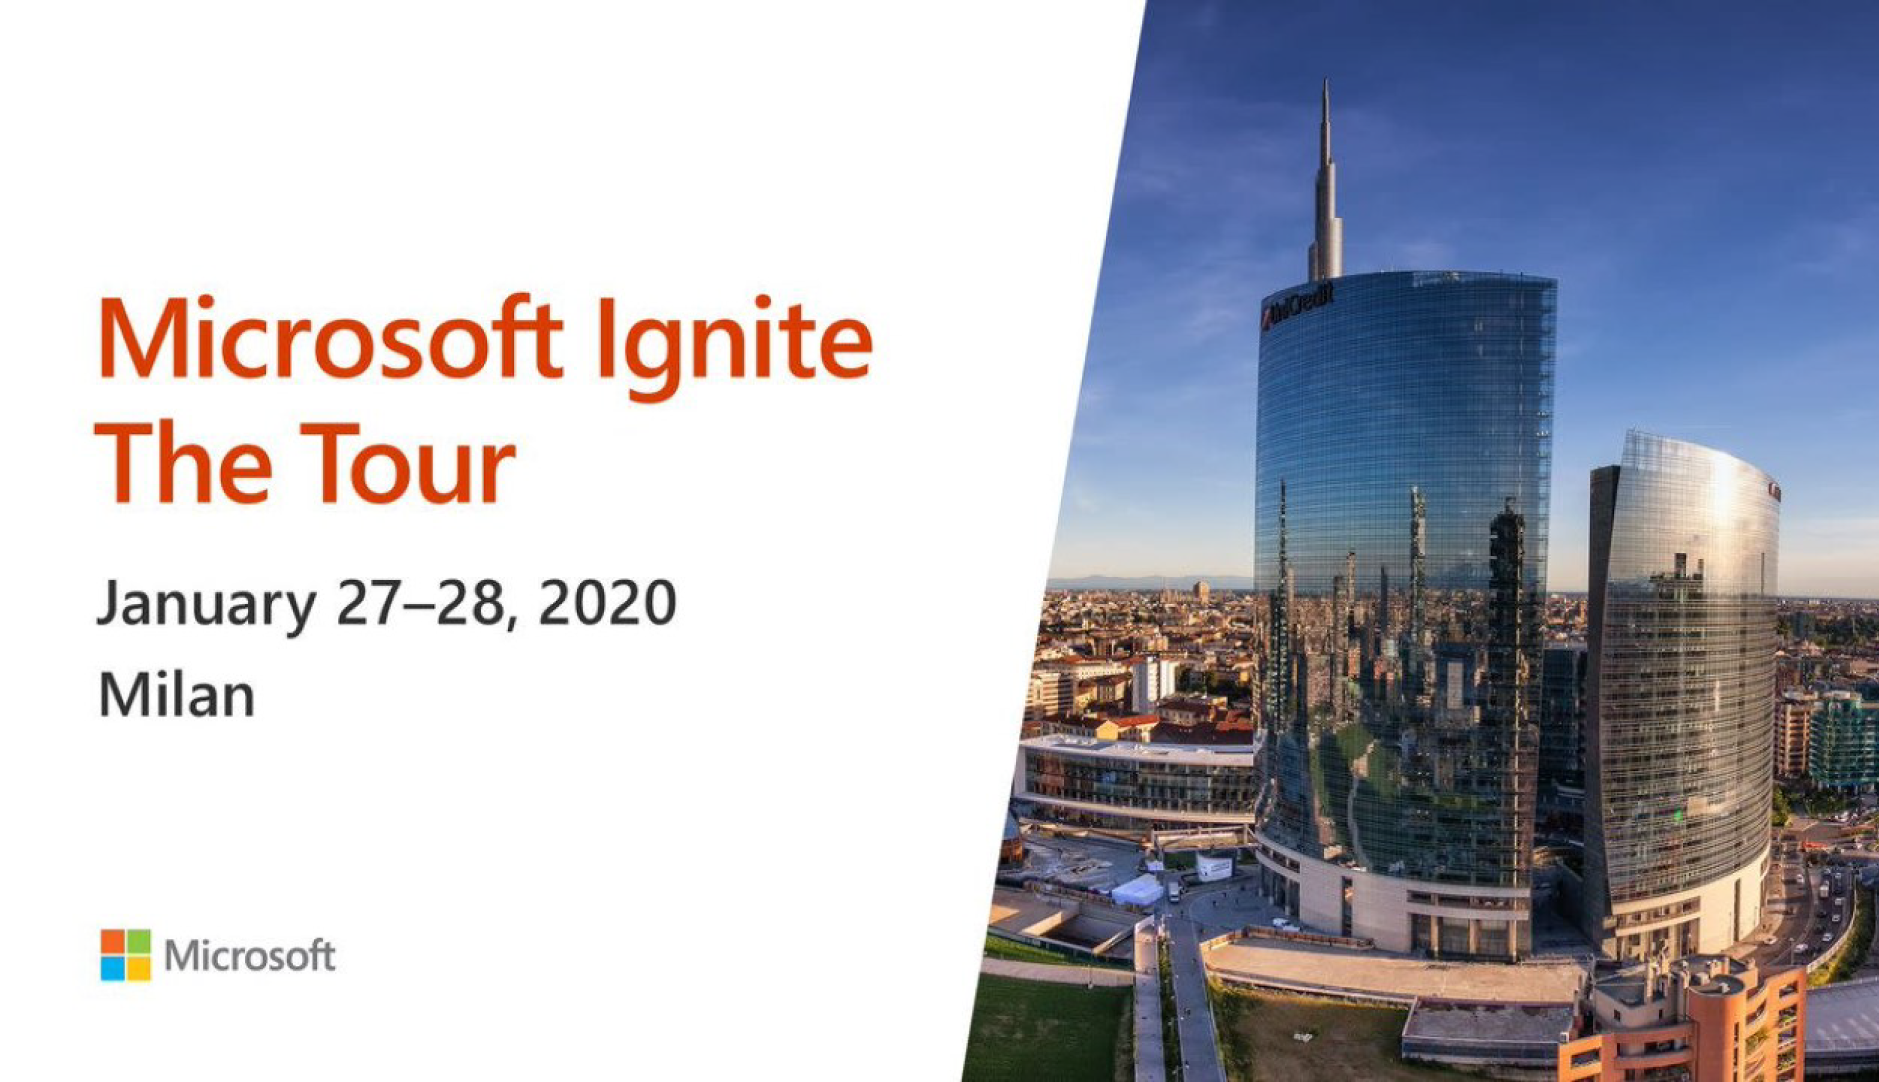 Microsoft Ignite The Tour 2020  Milan